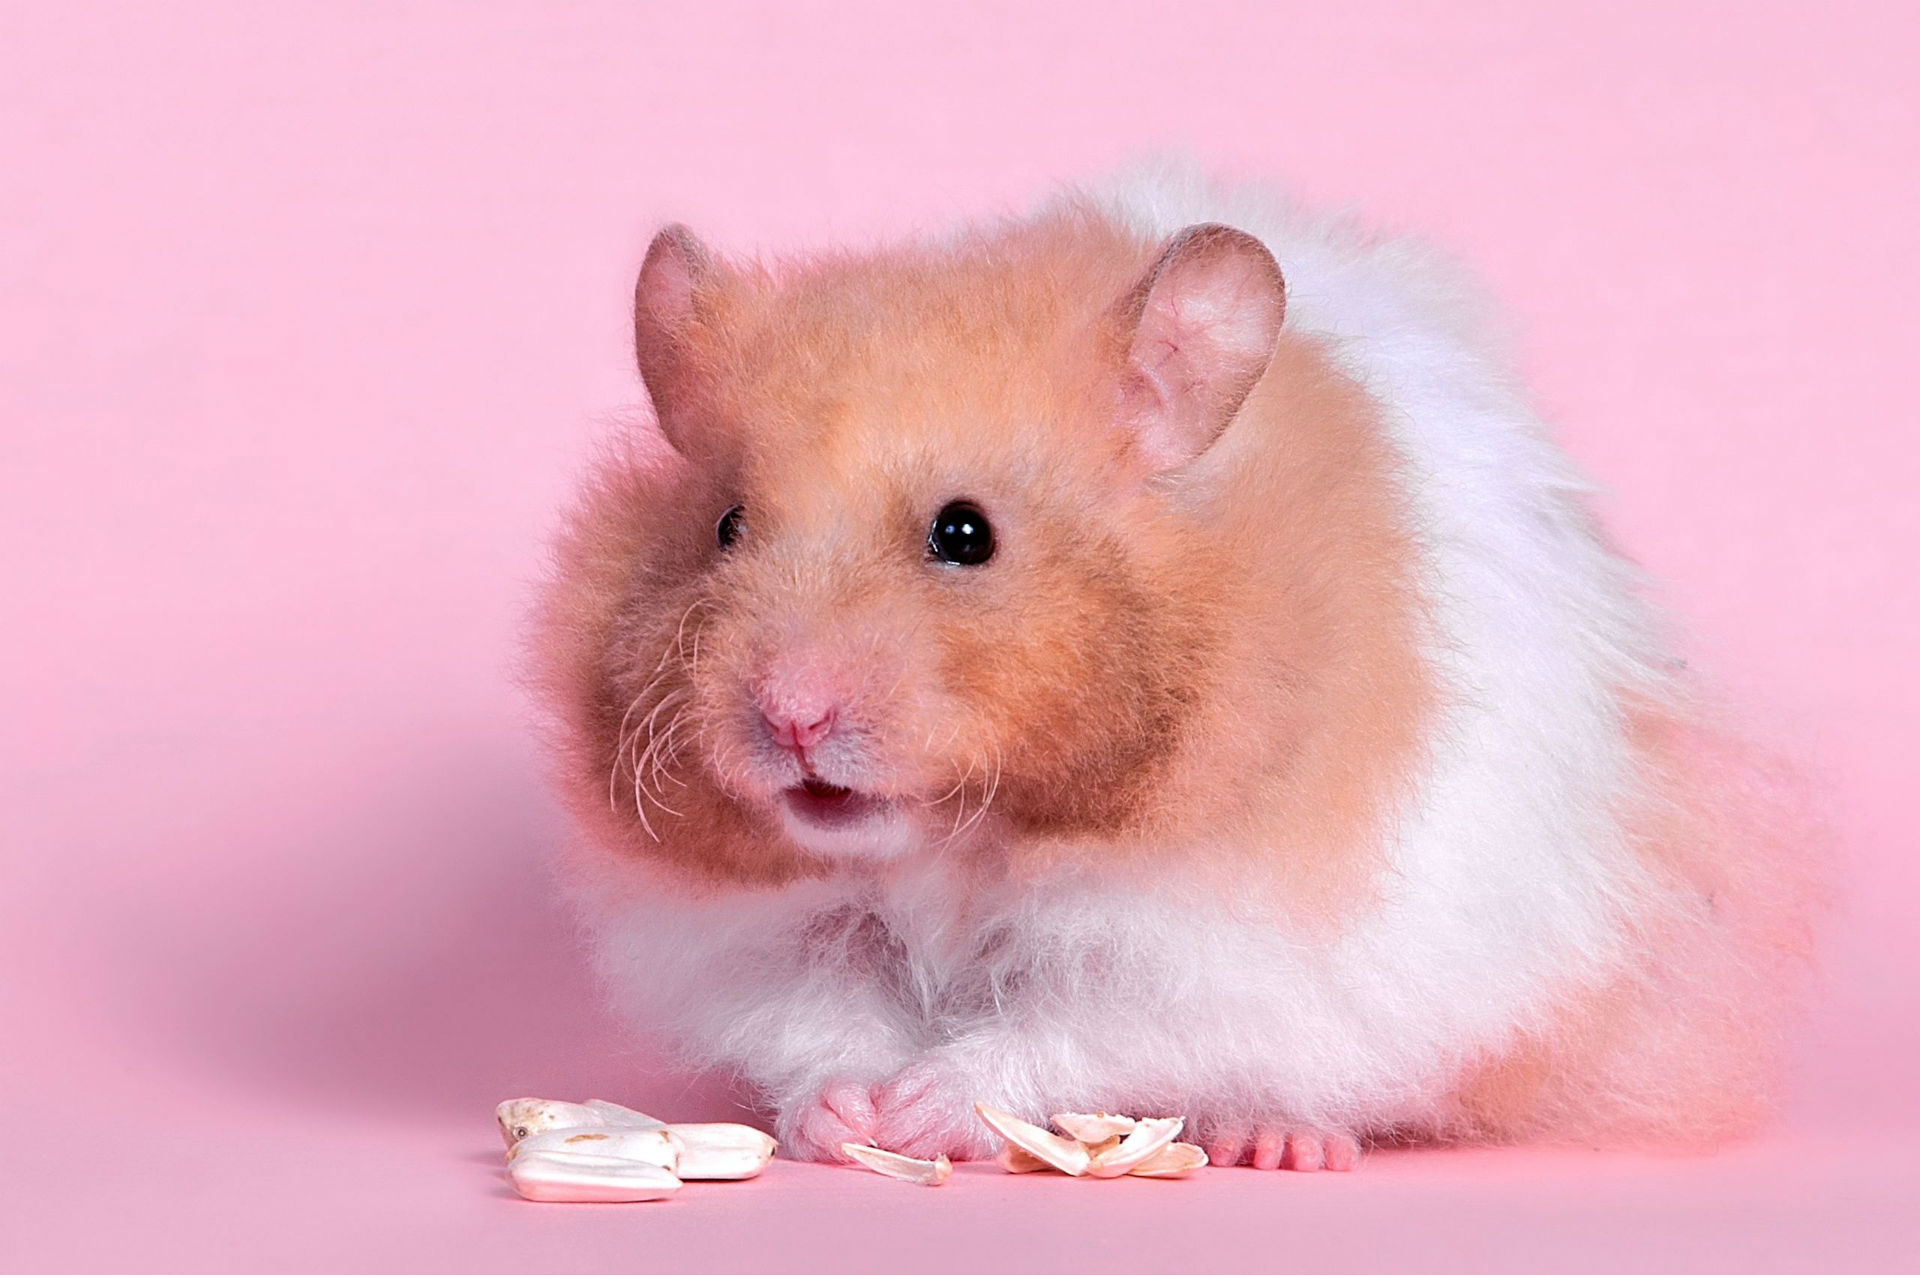 Hamster Computer Wallpapers Desktop Backgrounds 1920x1275 ID 1920x1275